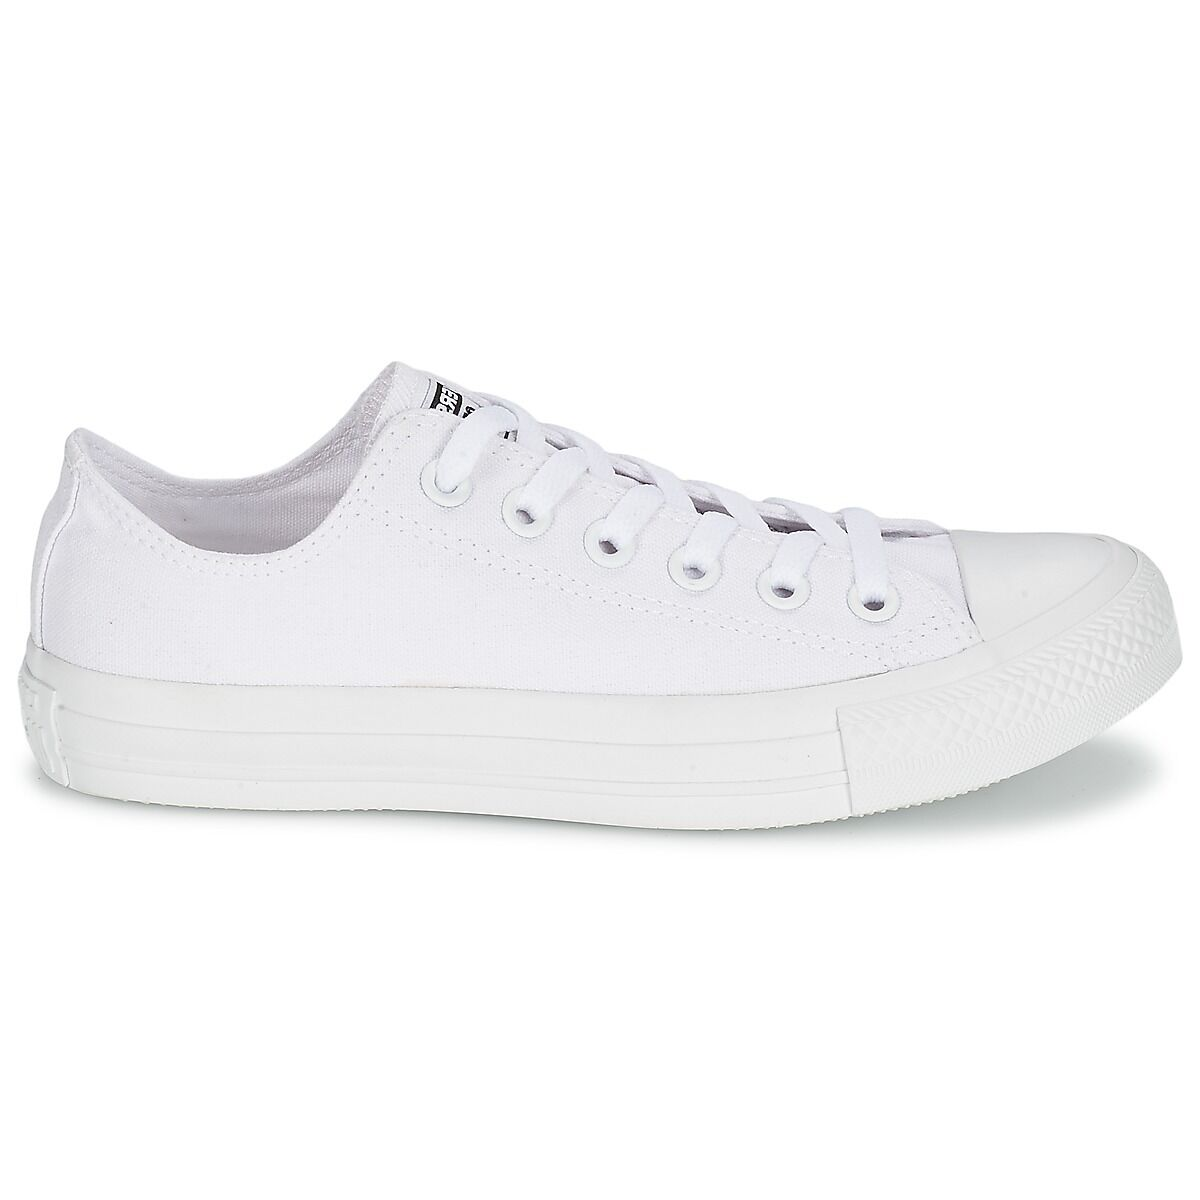 NEW Converse Womens Chuck Taylor OX All Star Mono Low Trainers Shoes - All White